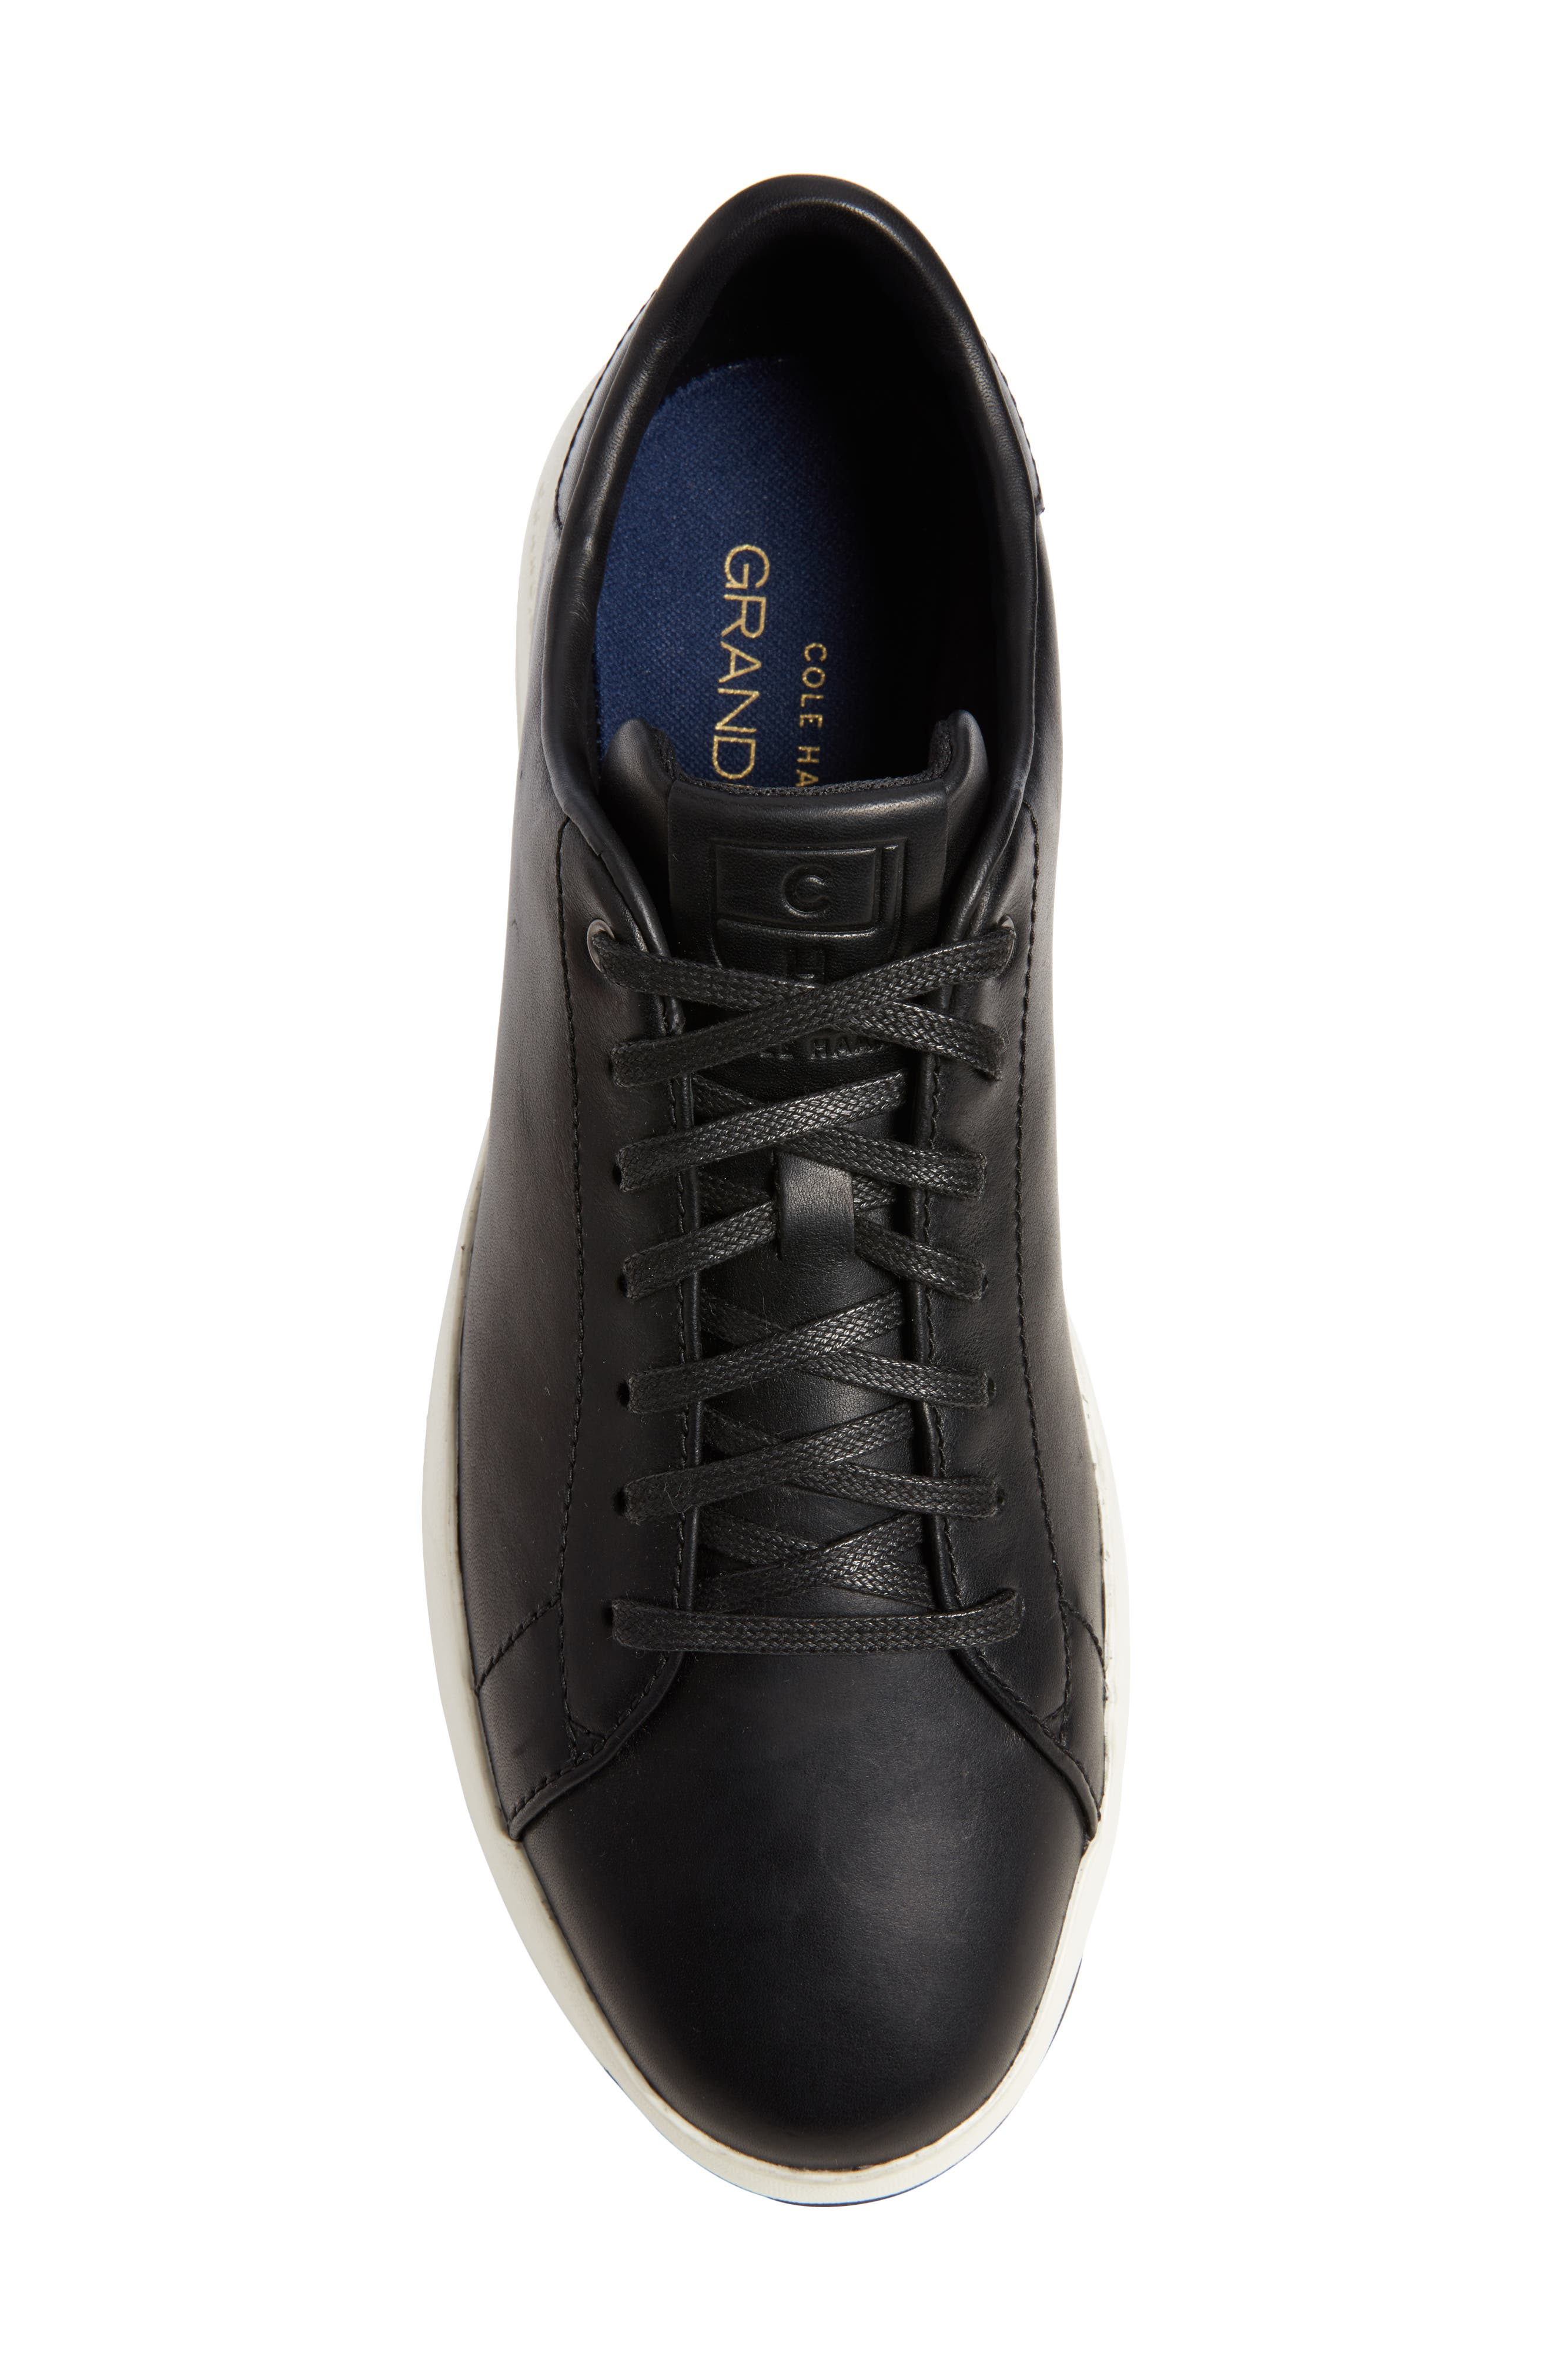 GrandPro Tennis Sneaker,                             Alternate thumbnail 5, color,                             004